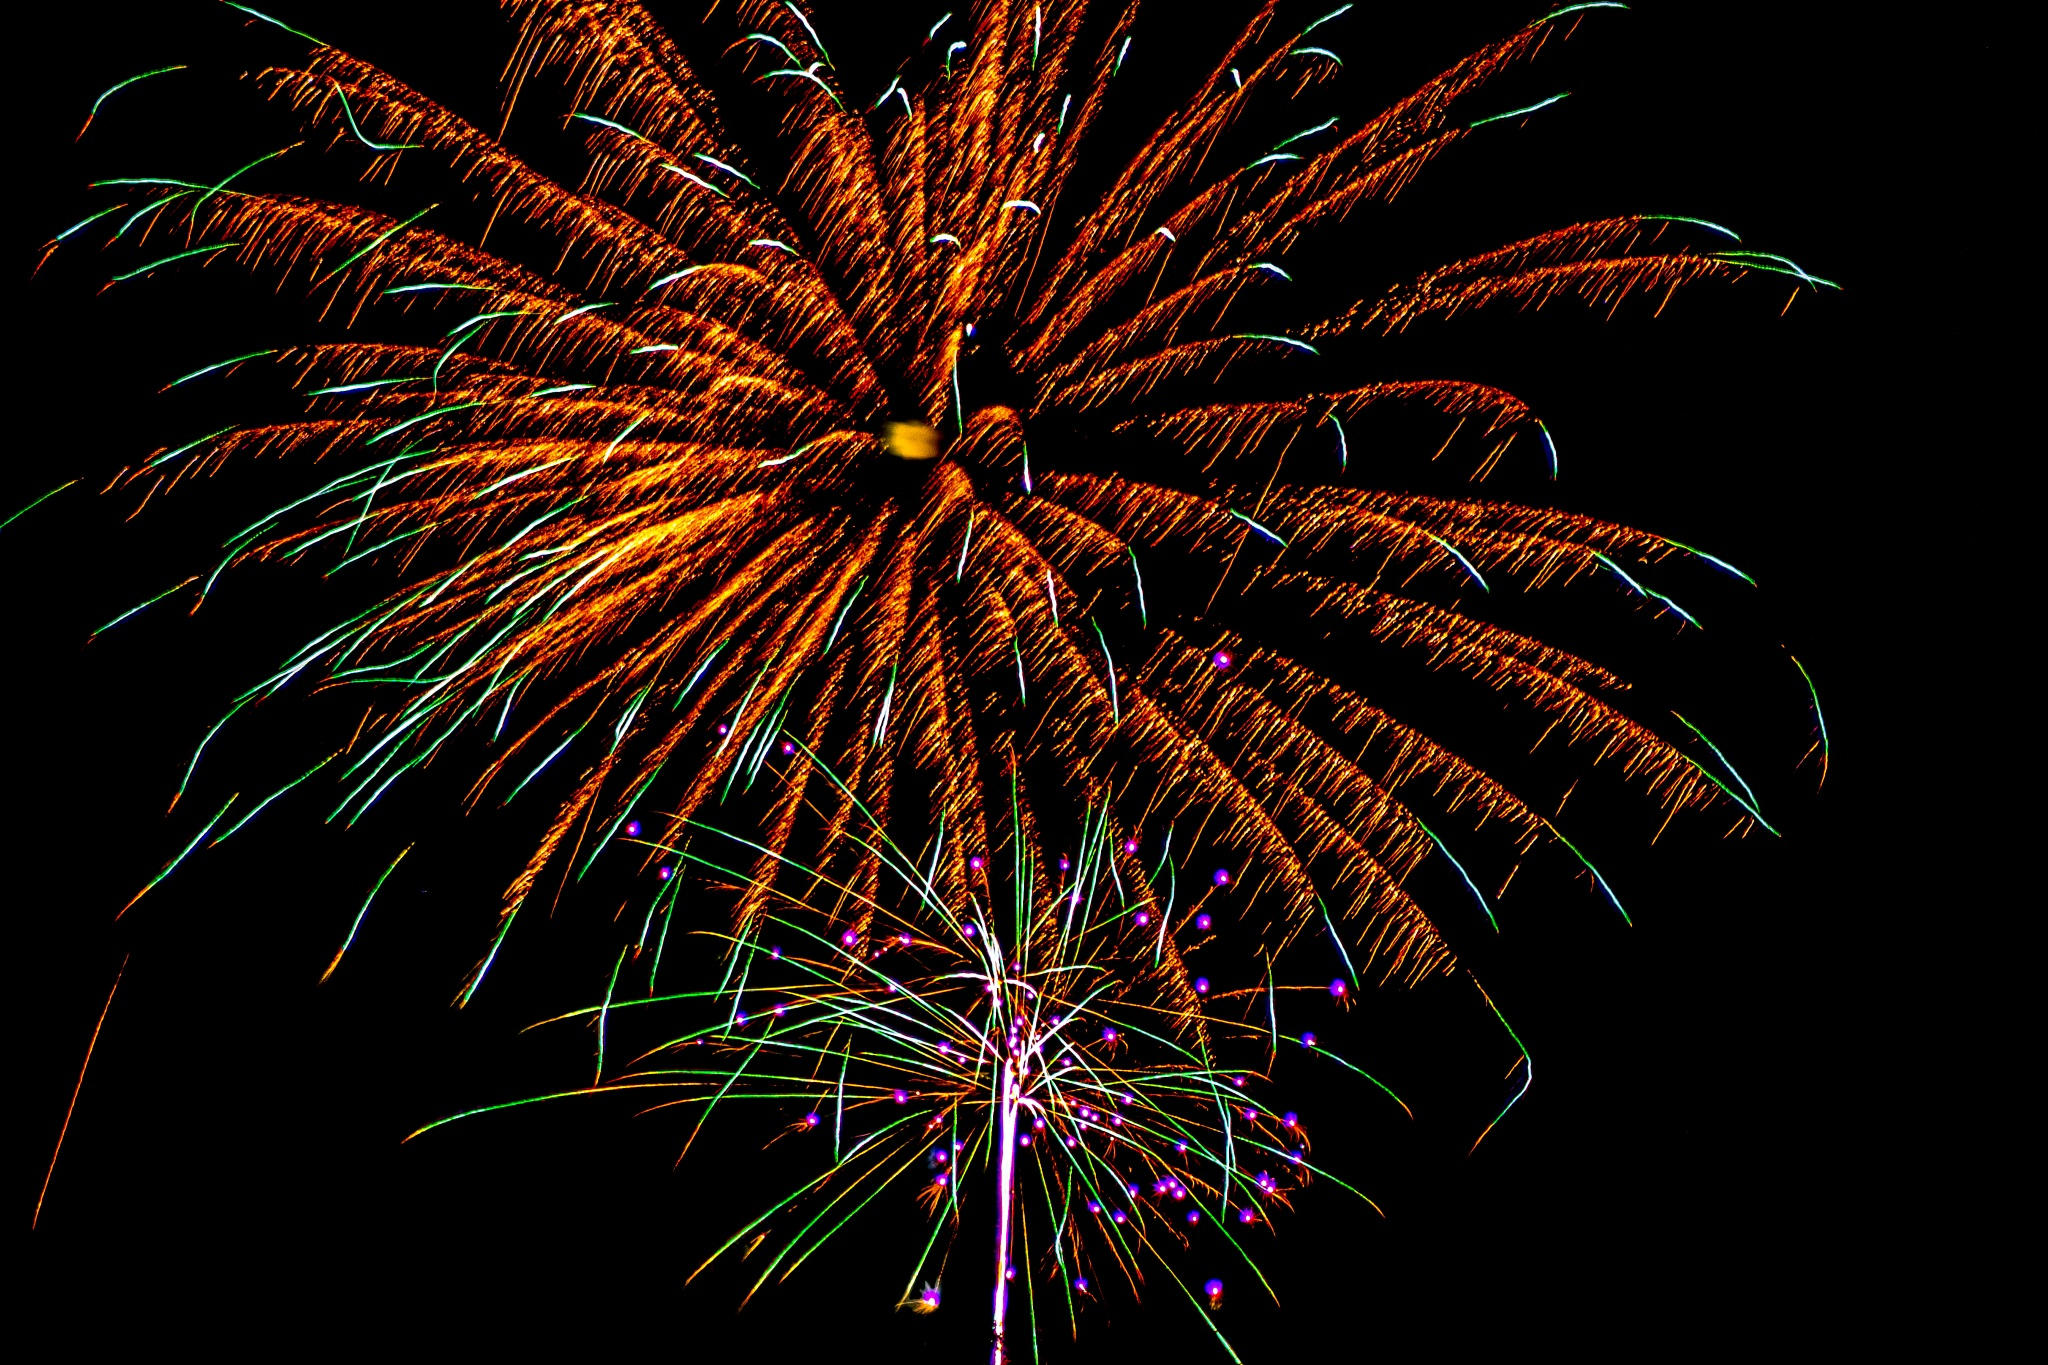 Independence Day Fireworks Display-22 by Julie Wooden